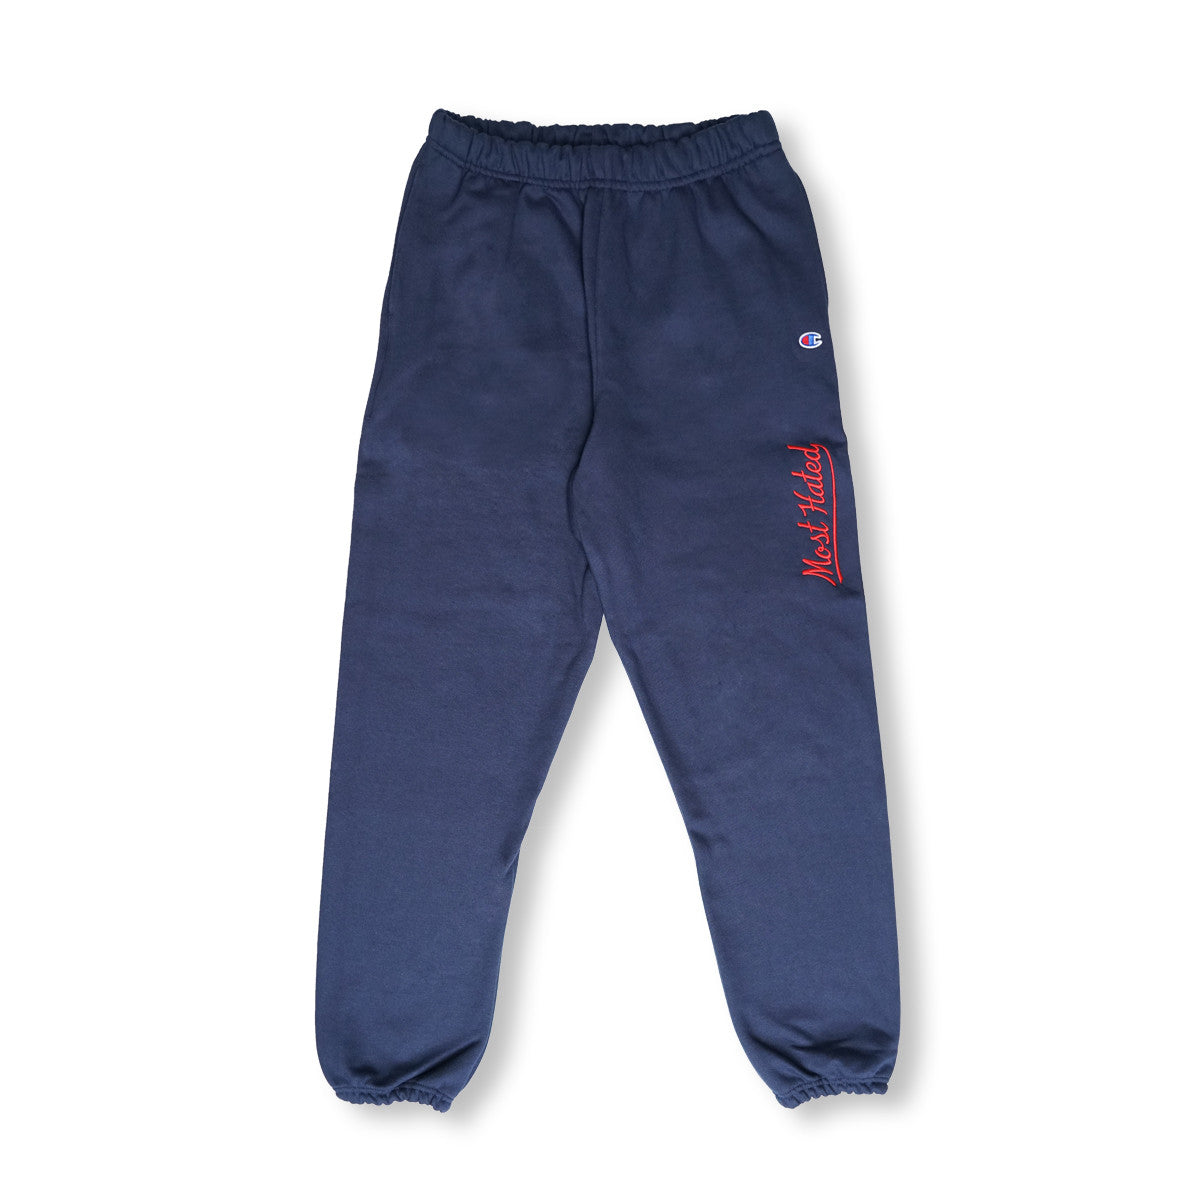 Most Hated Champion Sweatpants - Navy